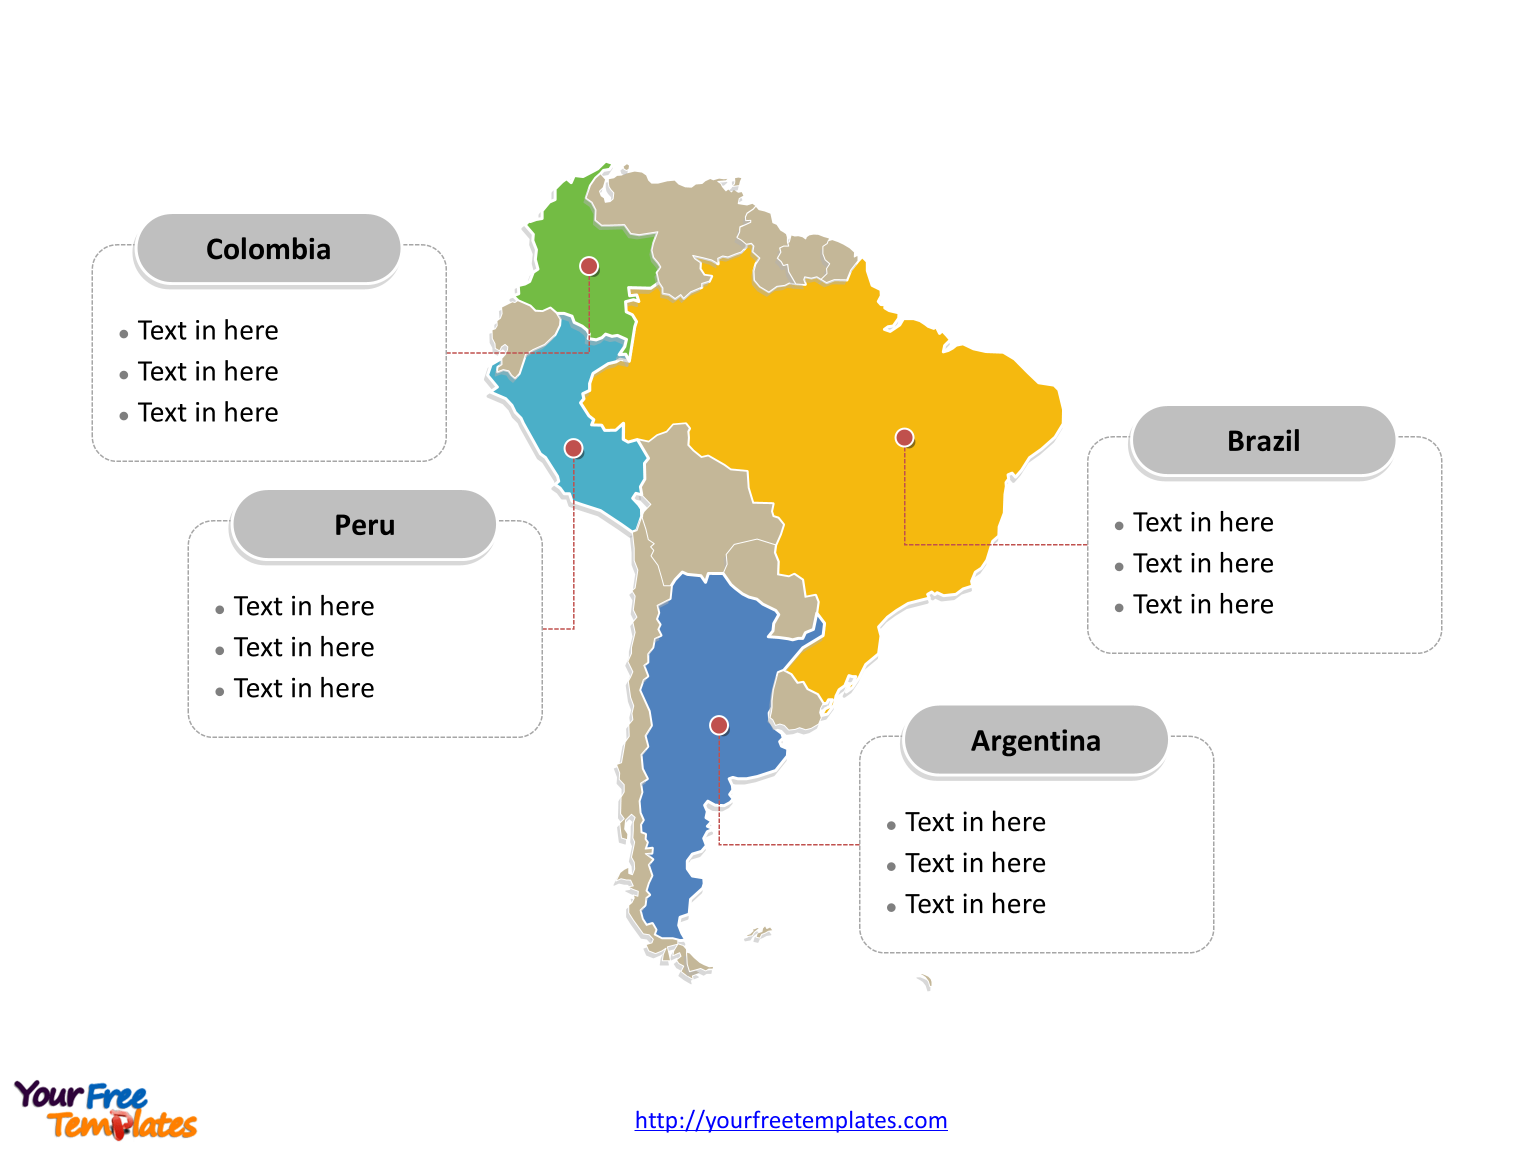 Map of South America with political division and major Countries labeled on the Blank South America map free templates